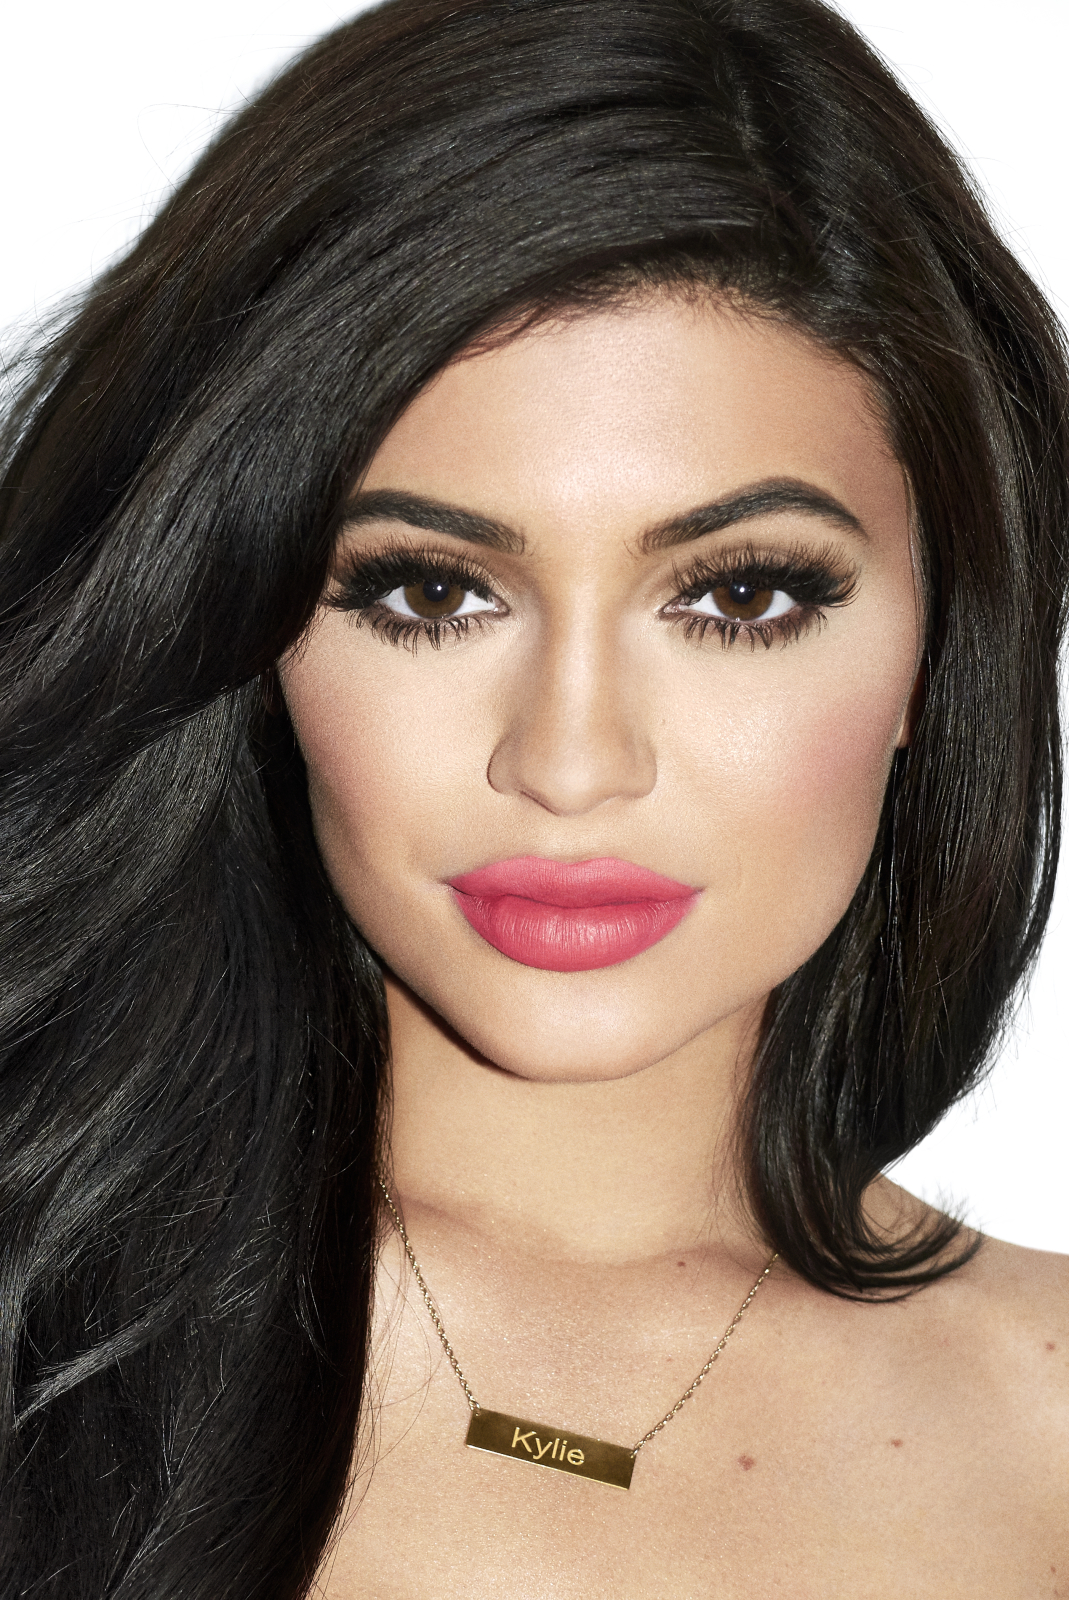 Kylie Jenner Makeup : Full HD Pictures